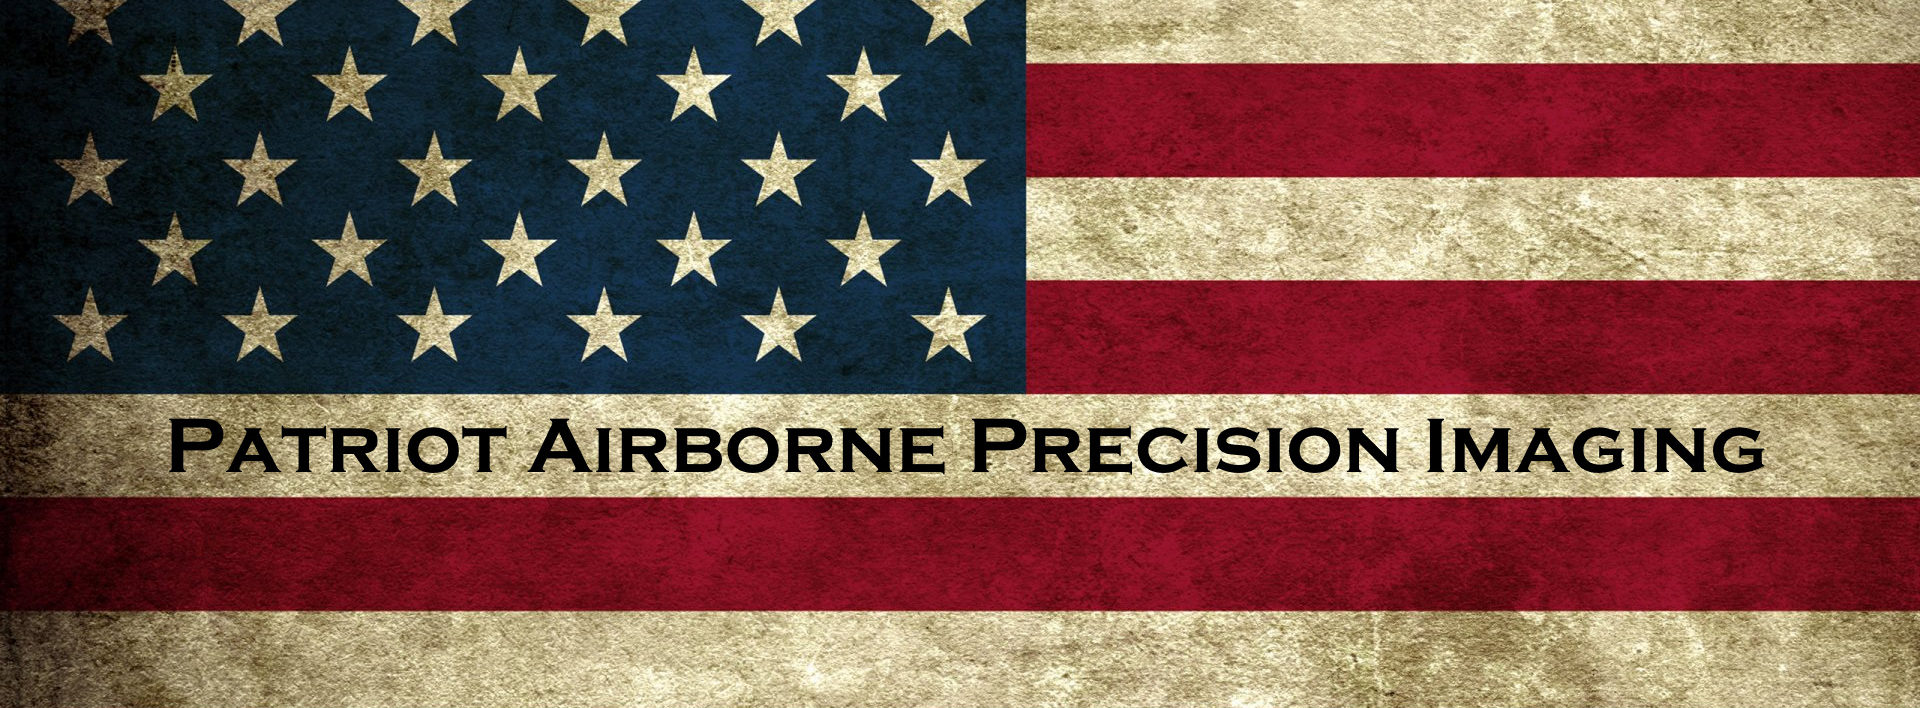 Patriot Airborne Precision Imaging